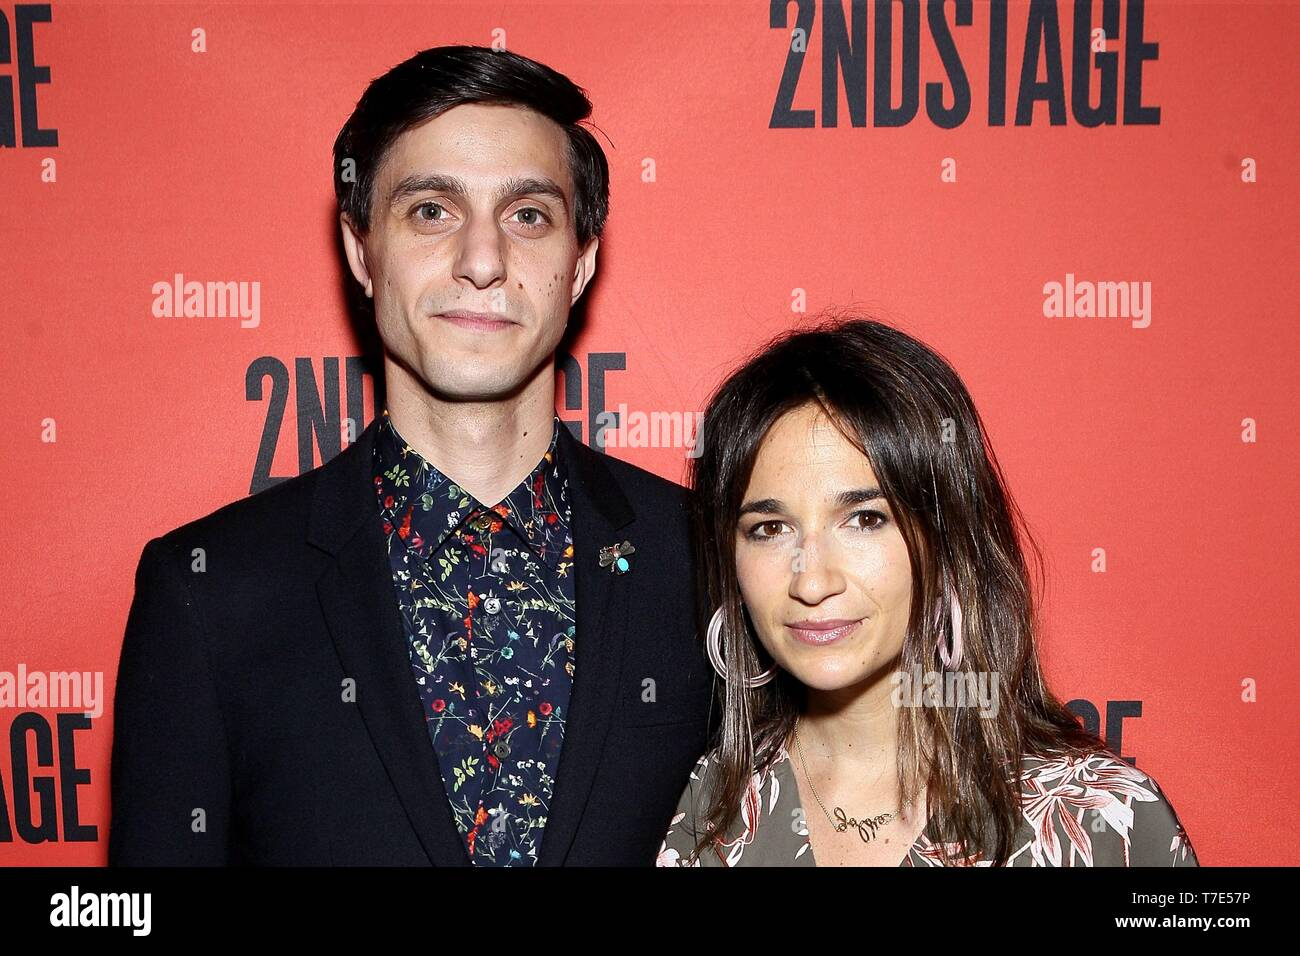 New York, NY, USA. 6th May, 2019. Gideon Glick, Sas Goldberg at arrivals for The Second Stage 40th Birthday Gala, Hammerstein Ballroom, New York, NY May 6, 2019. Credit: Steve Mack/Everett Collection/Alamy Live News - Stock Image